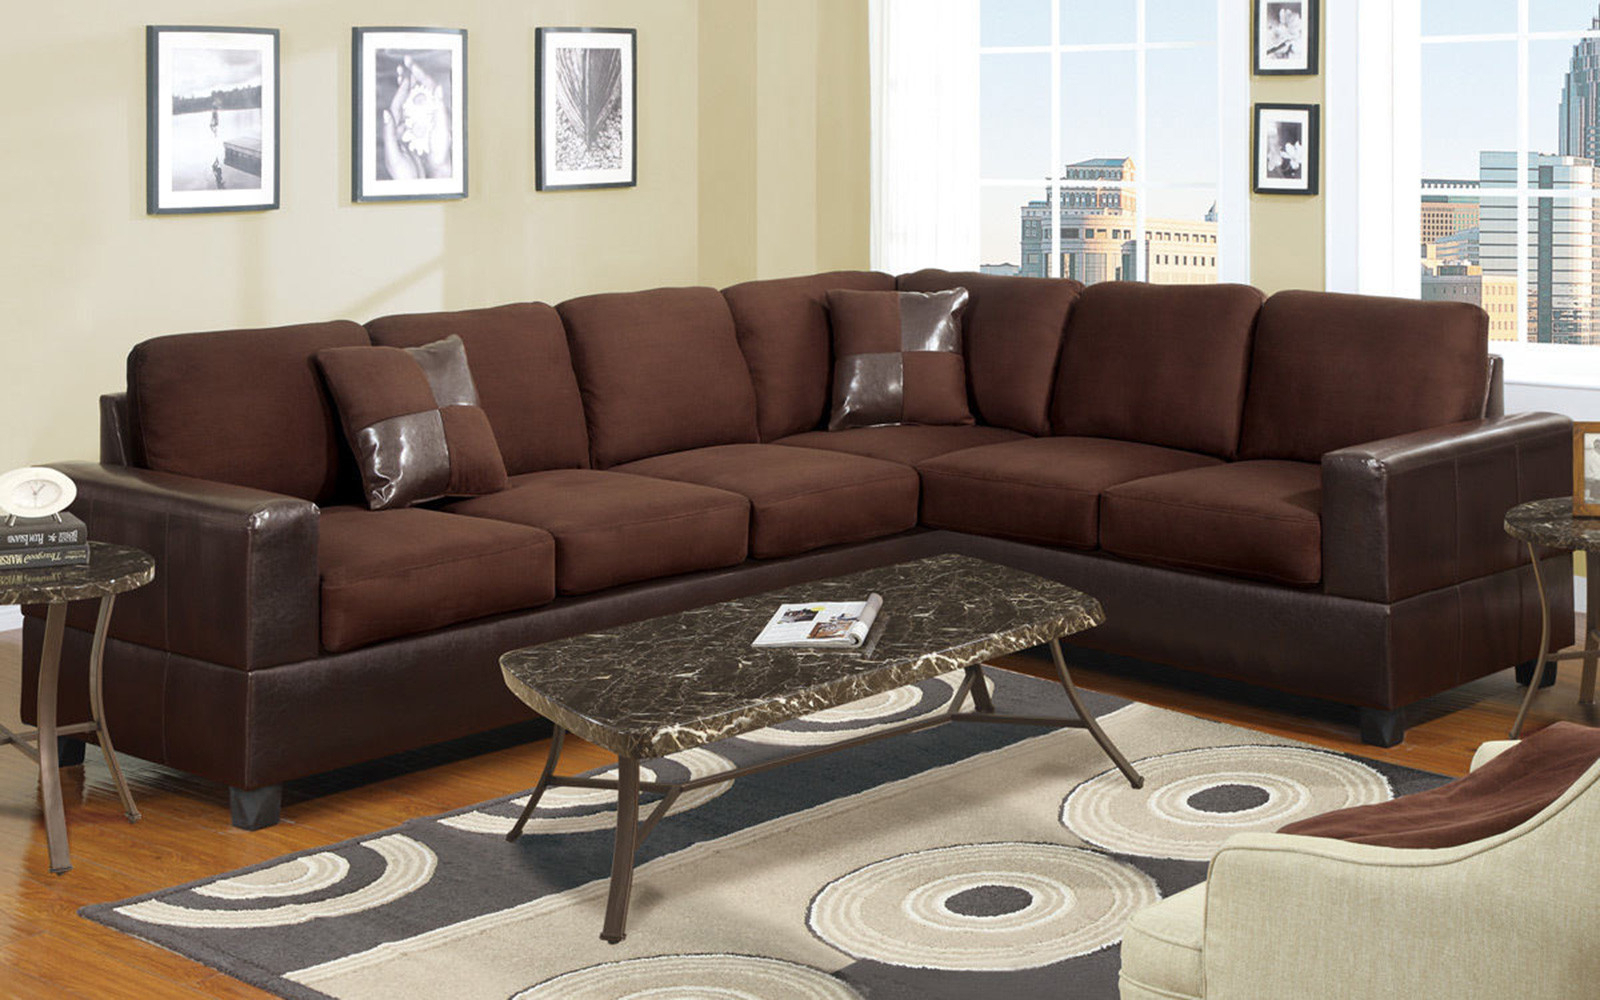 2 Piece Modern Large Microfiber And Faux Leather Sectional With Regard To Oversized Sectional Sofas (View 2 of 15)